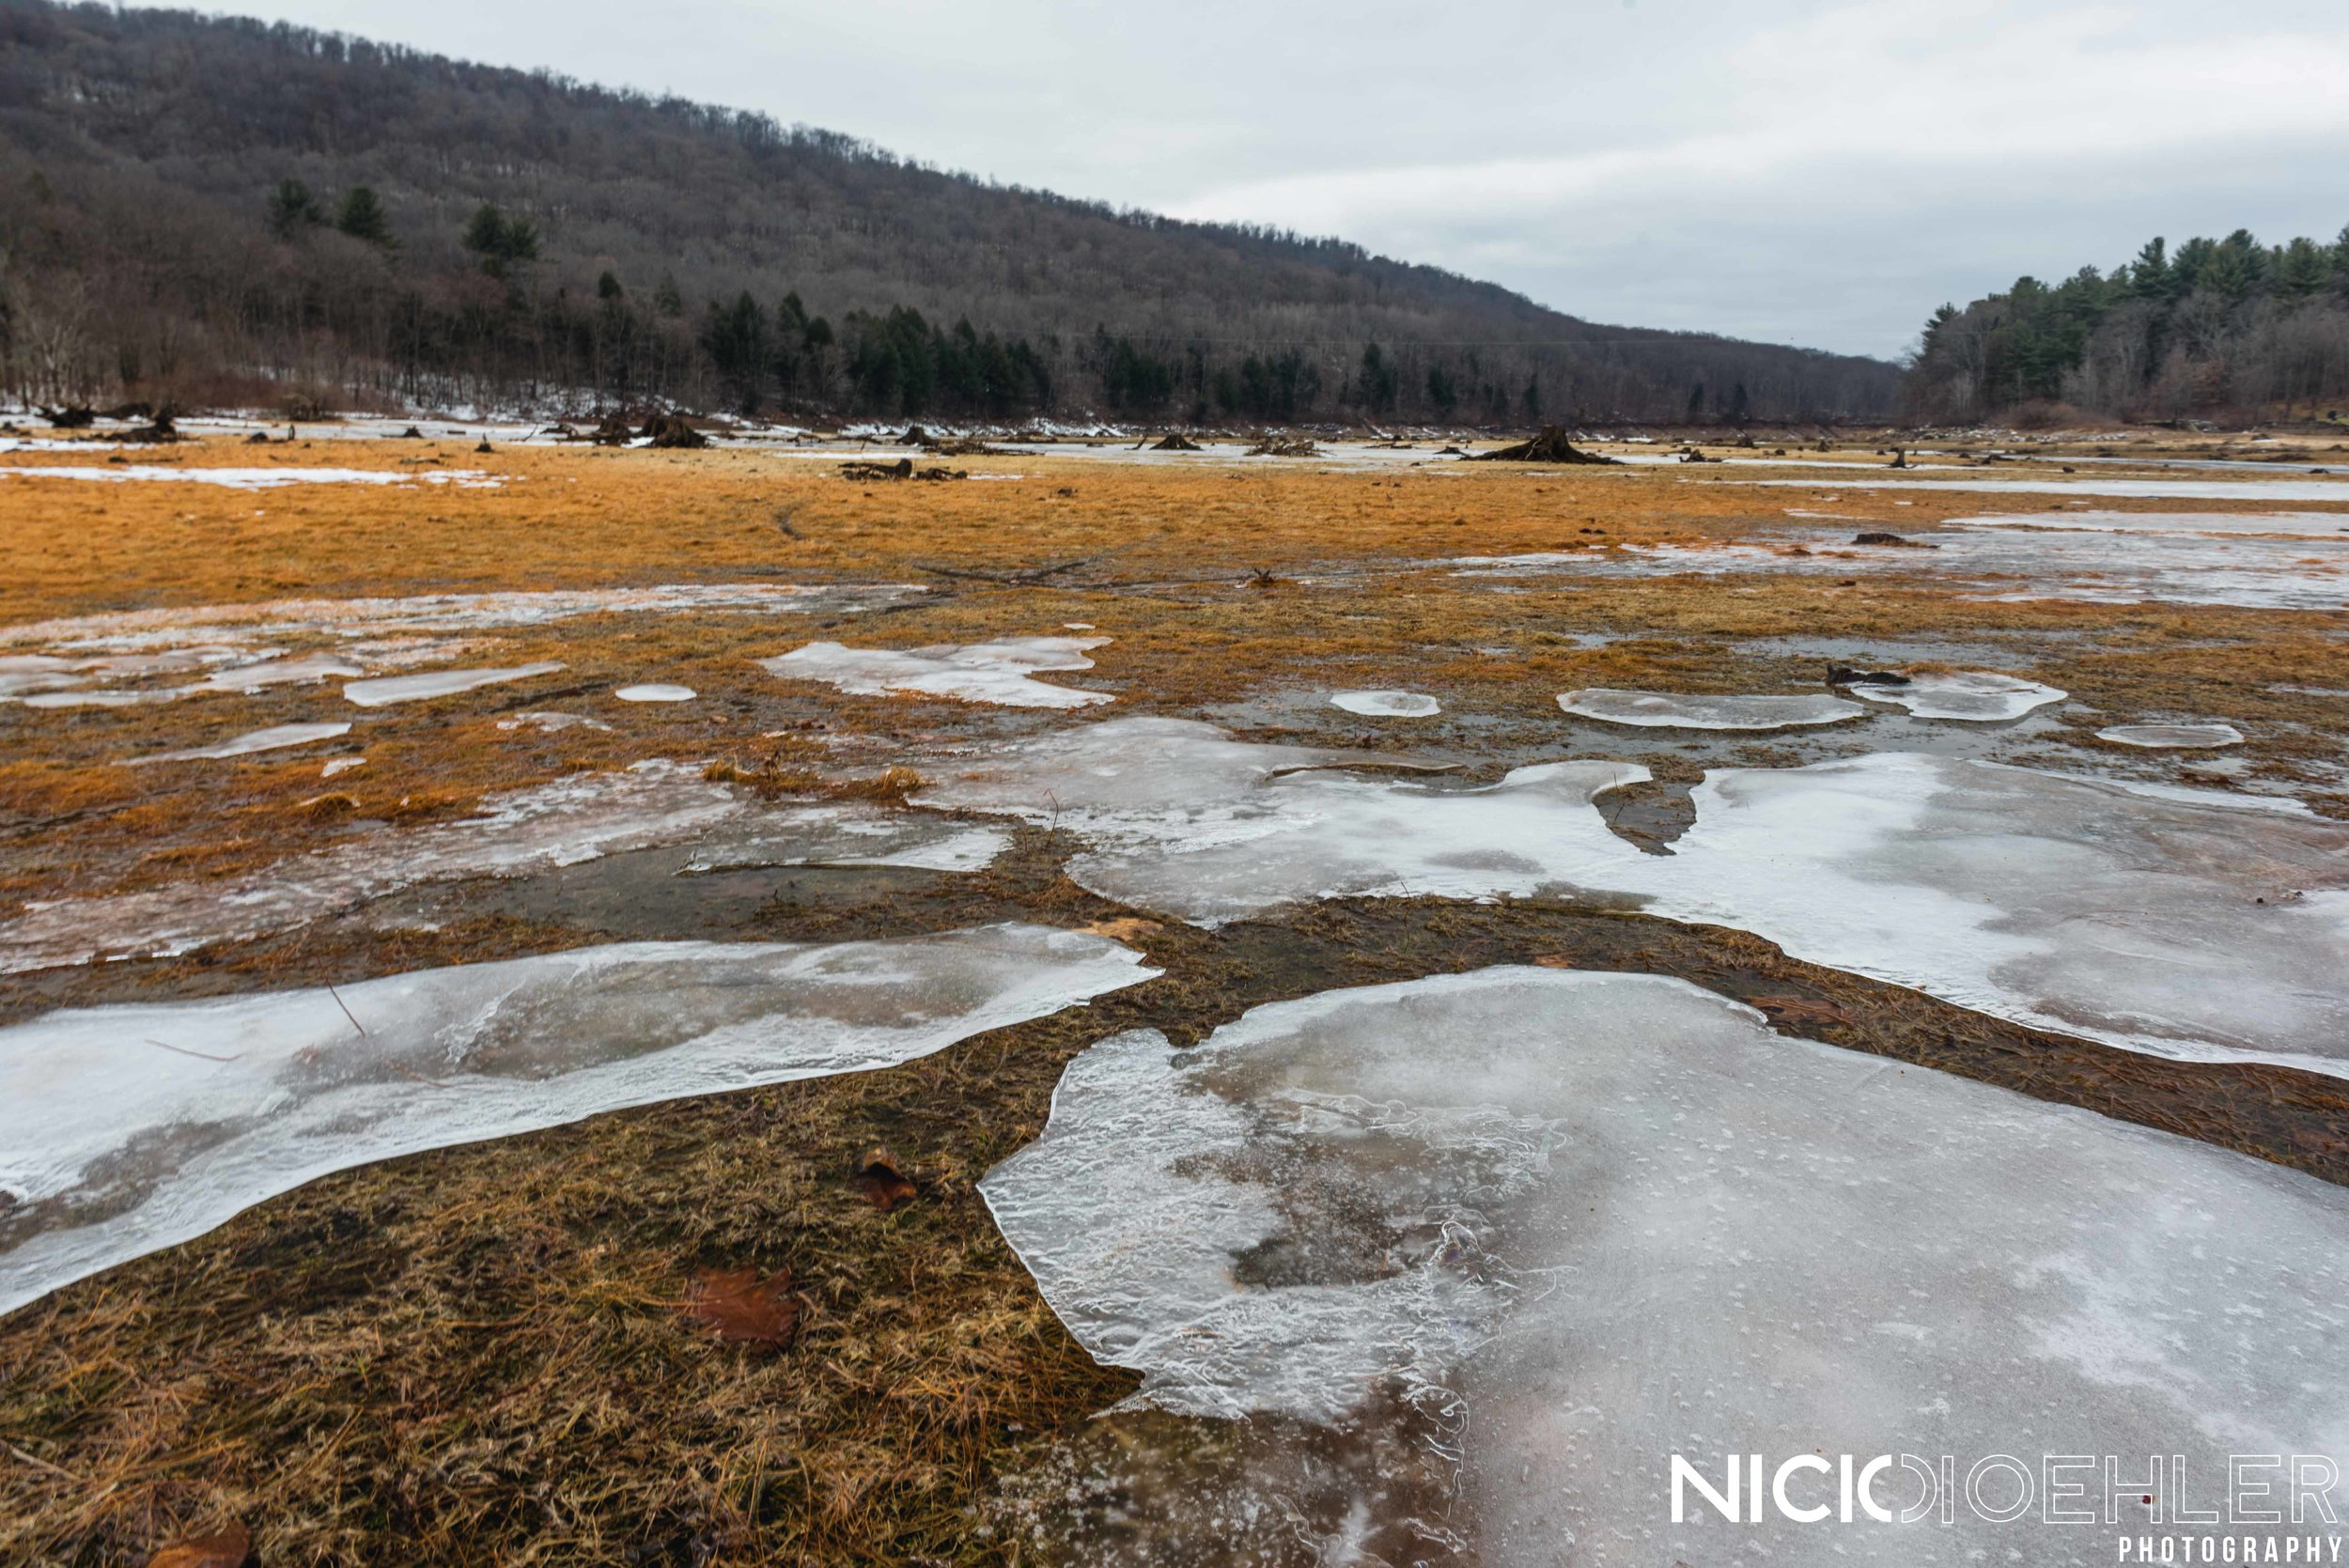 Ice pieces lay spread out across a wet grassland.